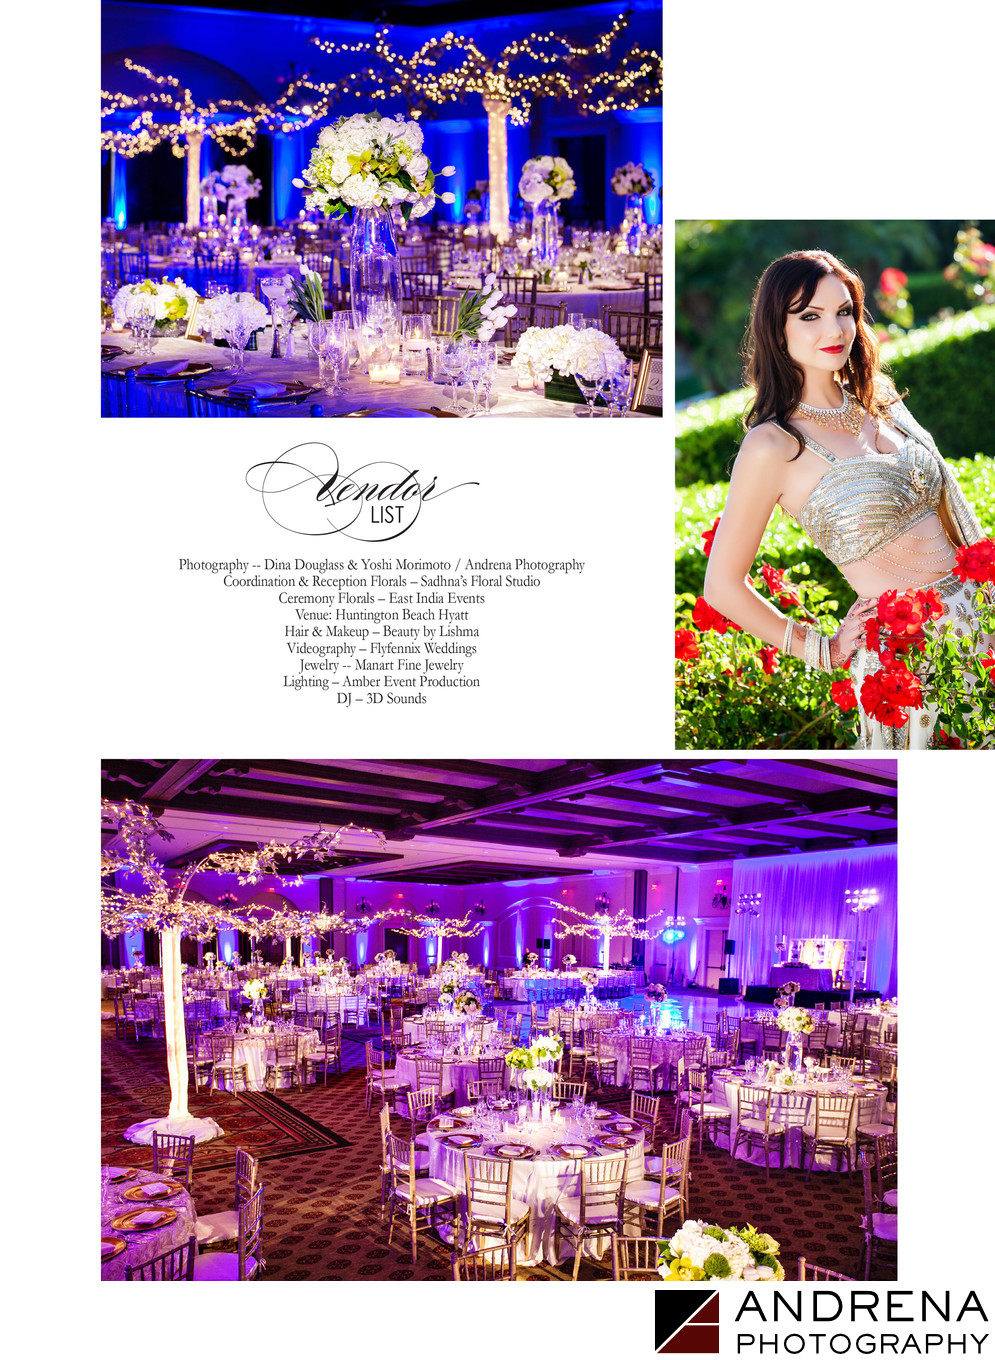 Huntington Beach Hyatt Indian Wedding South Asian Bride Magazine